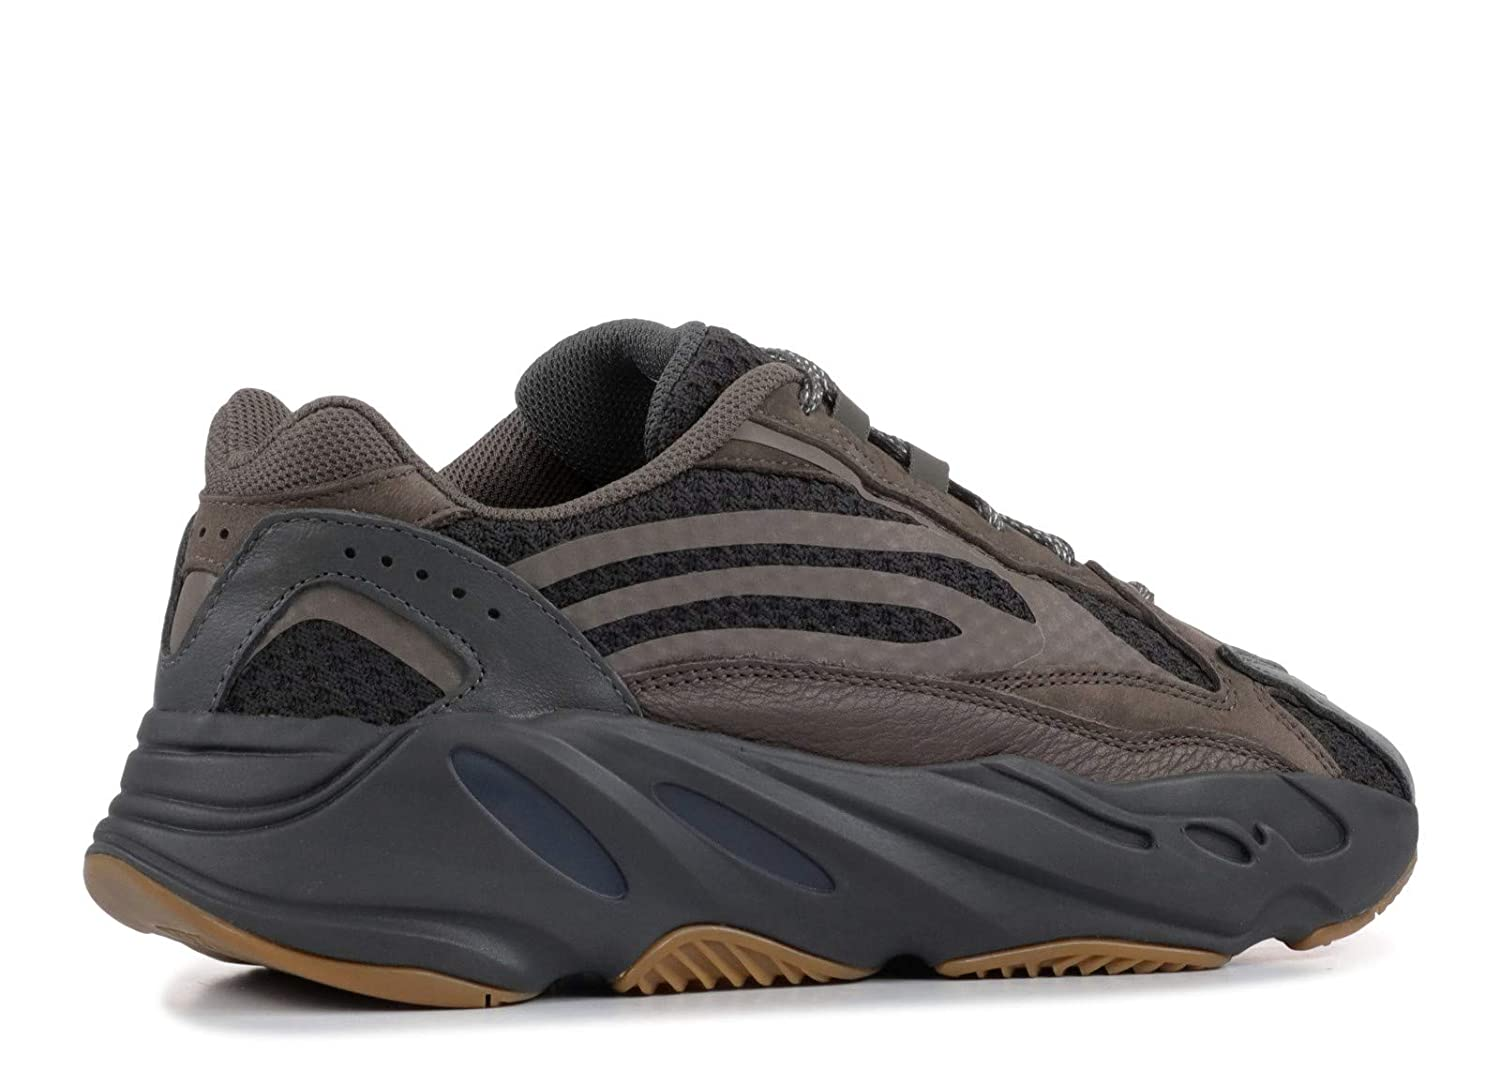 033f86d0 Amazon.com | adidas Yeezy Boost 700 V2 'Geode' - Eg6860 - Size 4 | Shoes